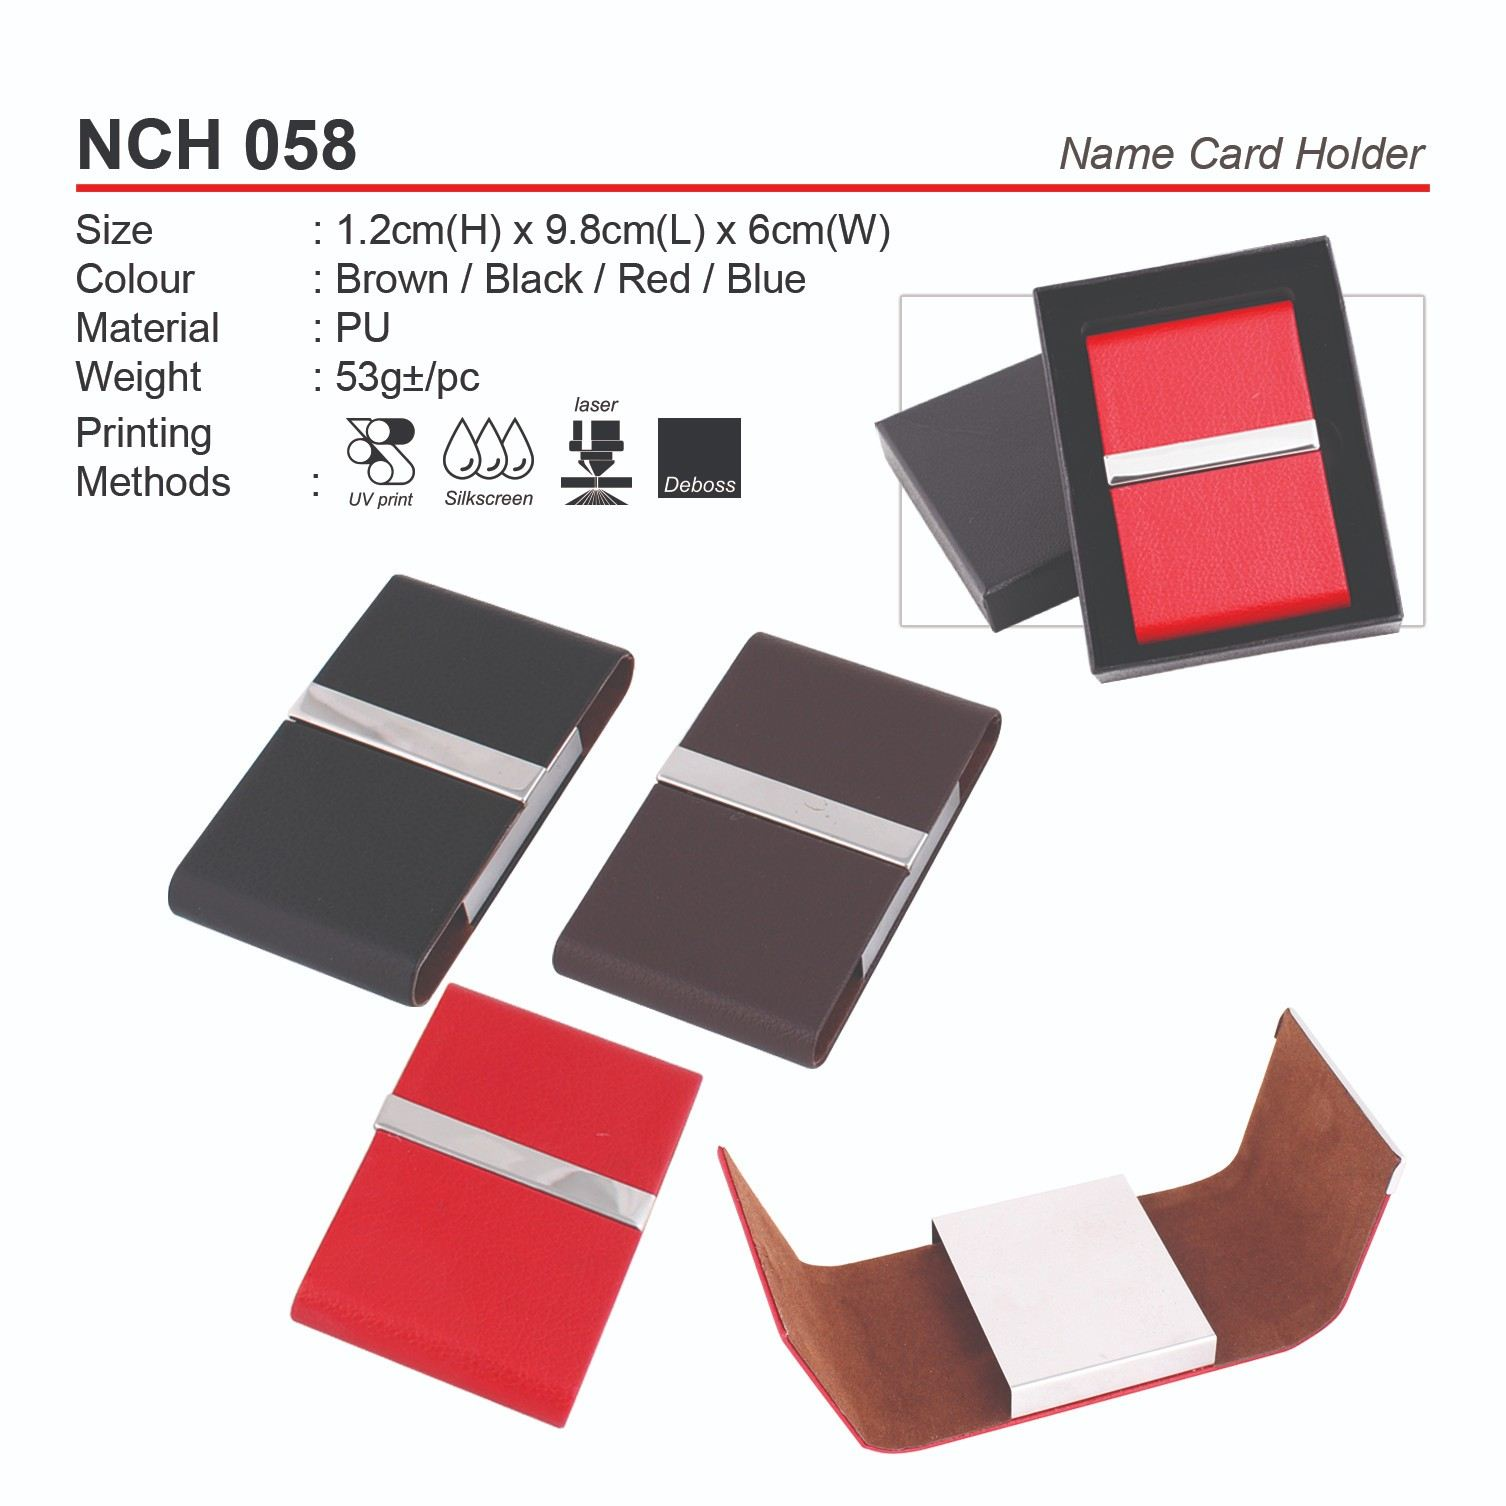 NCH058 Name Card Holder